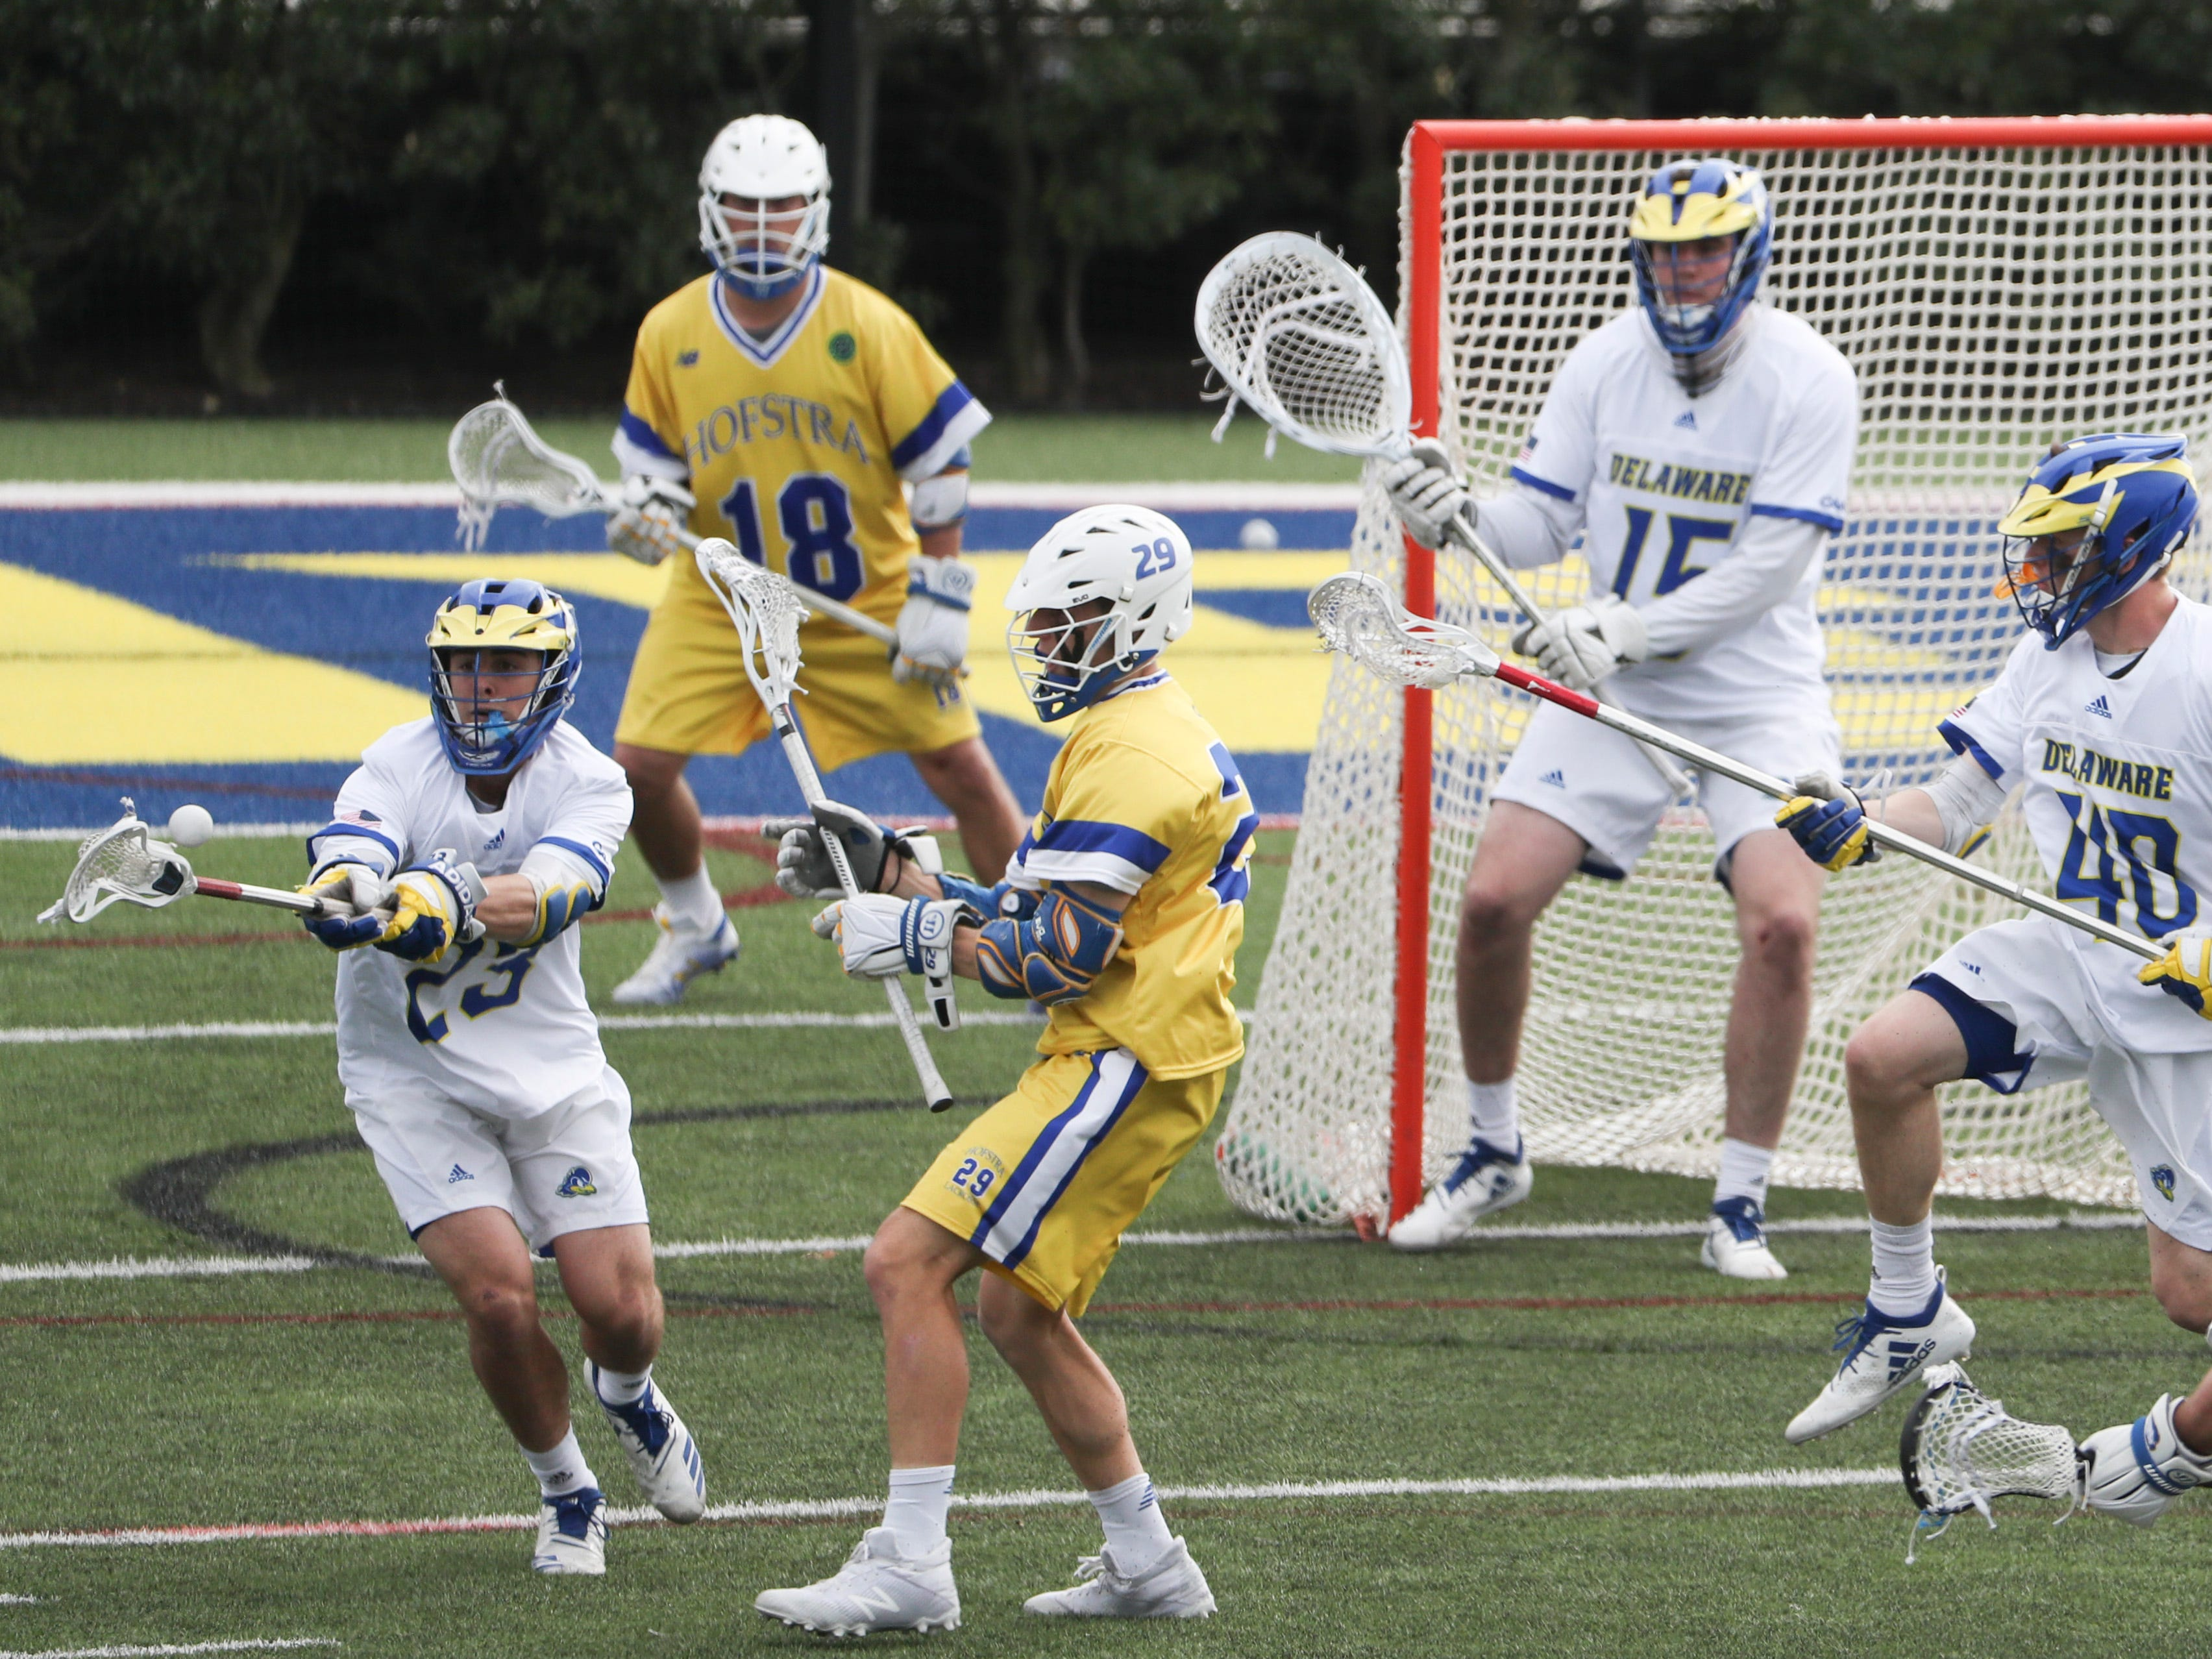 Delaware's Jason Seiter (left) goes for a loose ball on defense in the fourth period of Delaware's 13-7 win against Hofstra Saturday at Delaware Stadium.